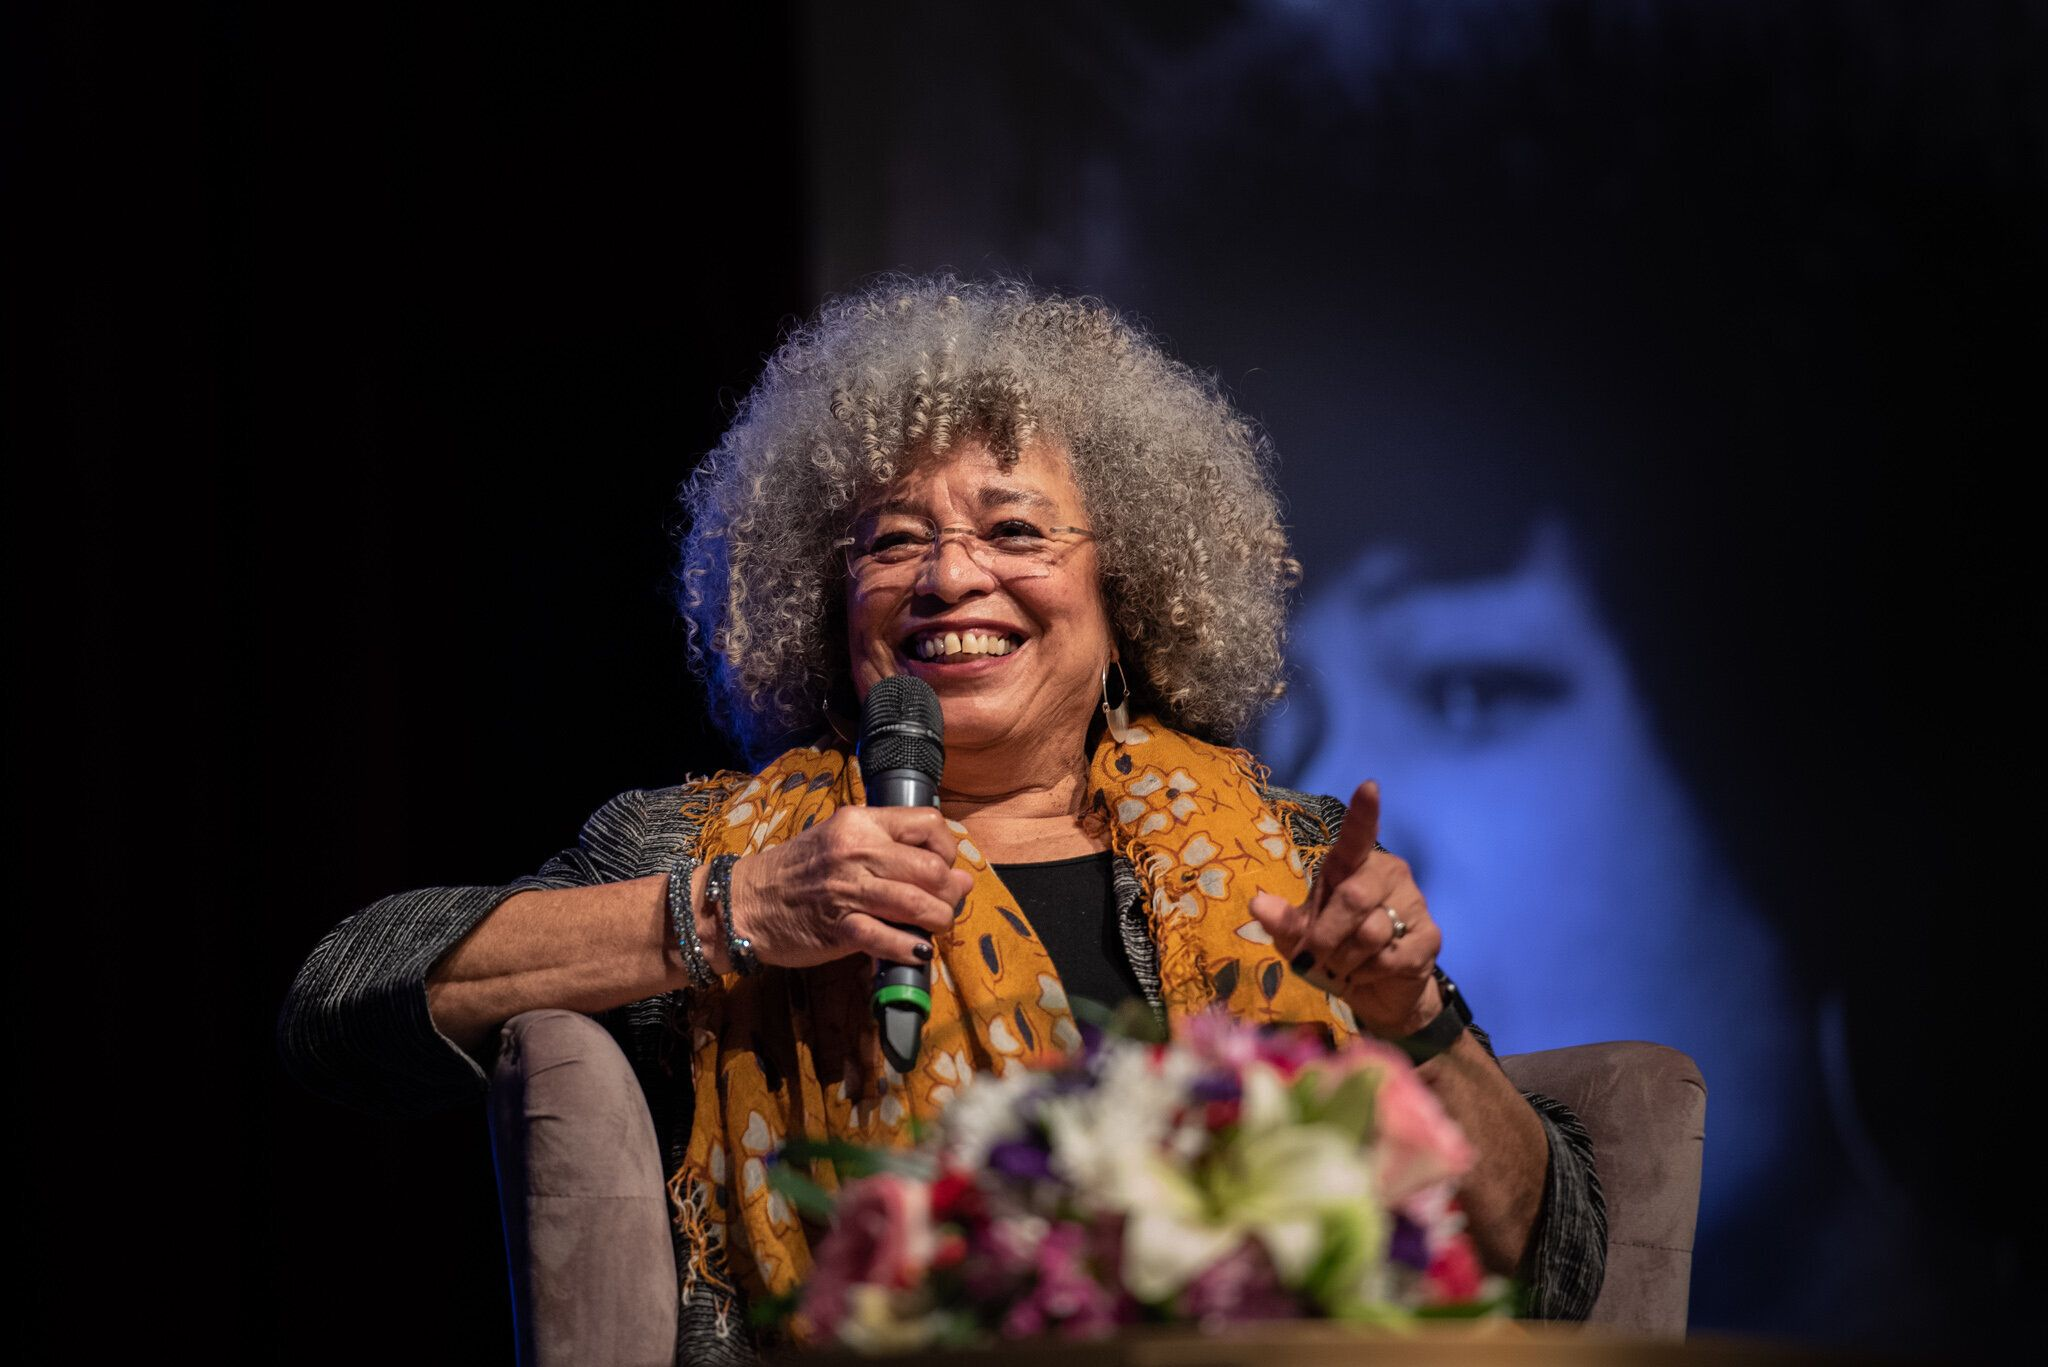 BIRMINGHAM, AL FEBRUARY 16: Angela Davis speaking at the Birmingham Committee for Truth and Reconciliation event at the Boutwell Auditorium on February 16, 2019 in Birmingham, Al. (Photo by Andi(cq)Rice/For The Washington Post via Getty Images)